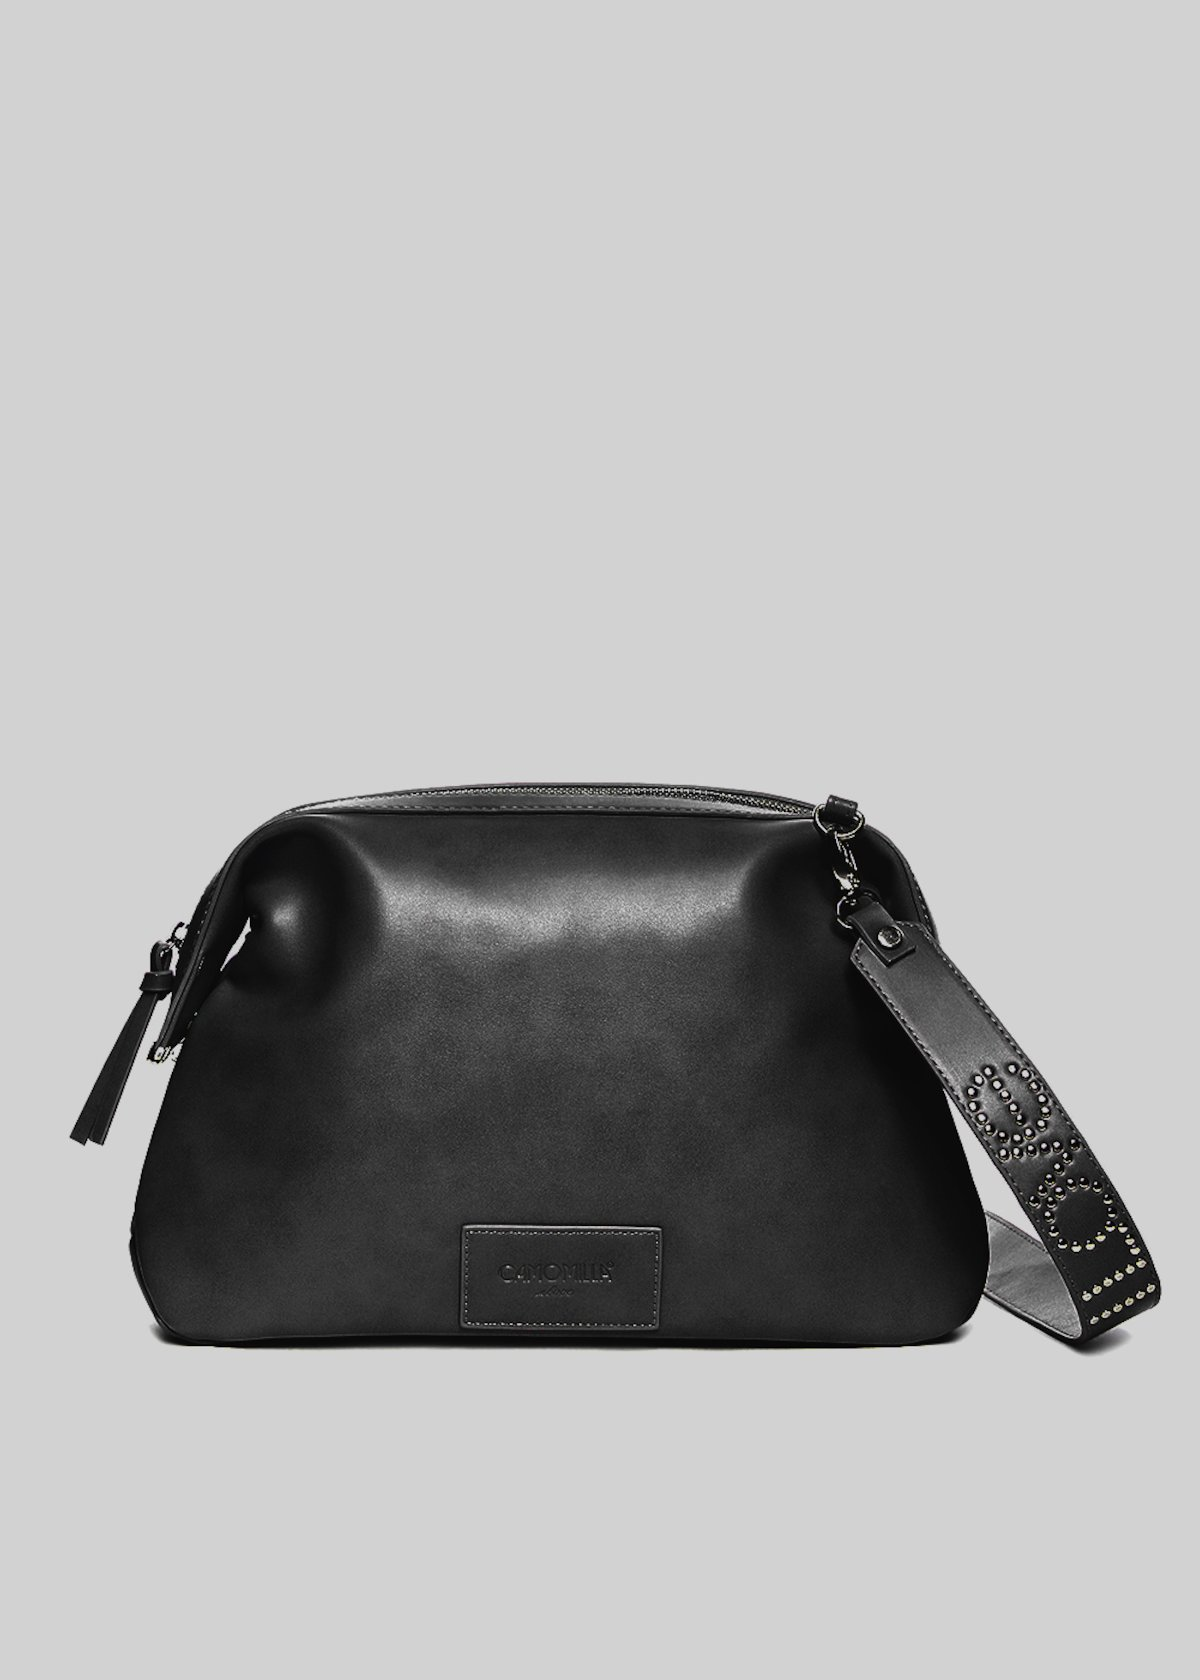 Broke faux leather handle bag with logoed shoulder strap